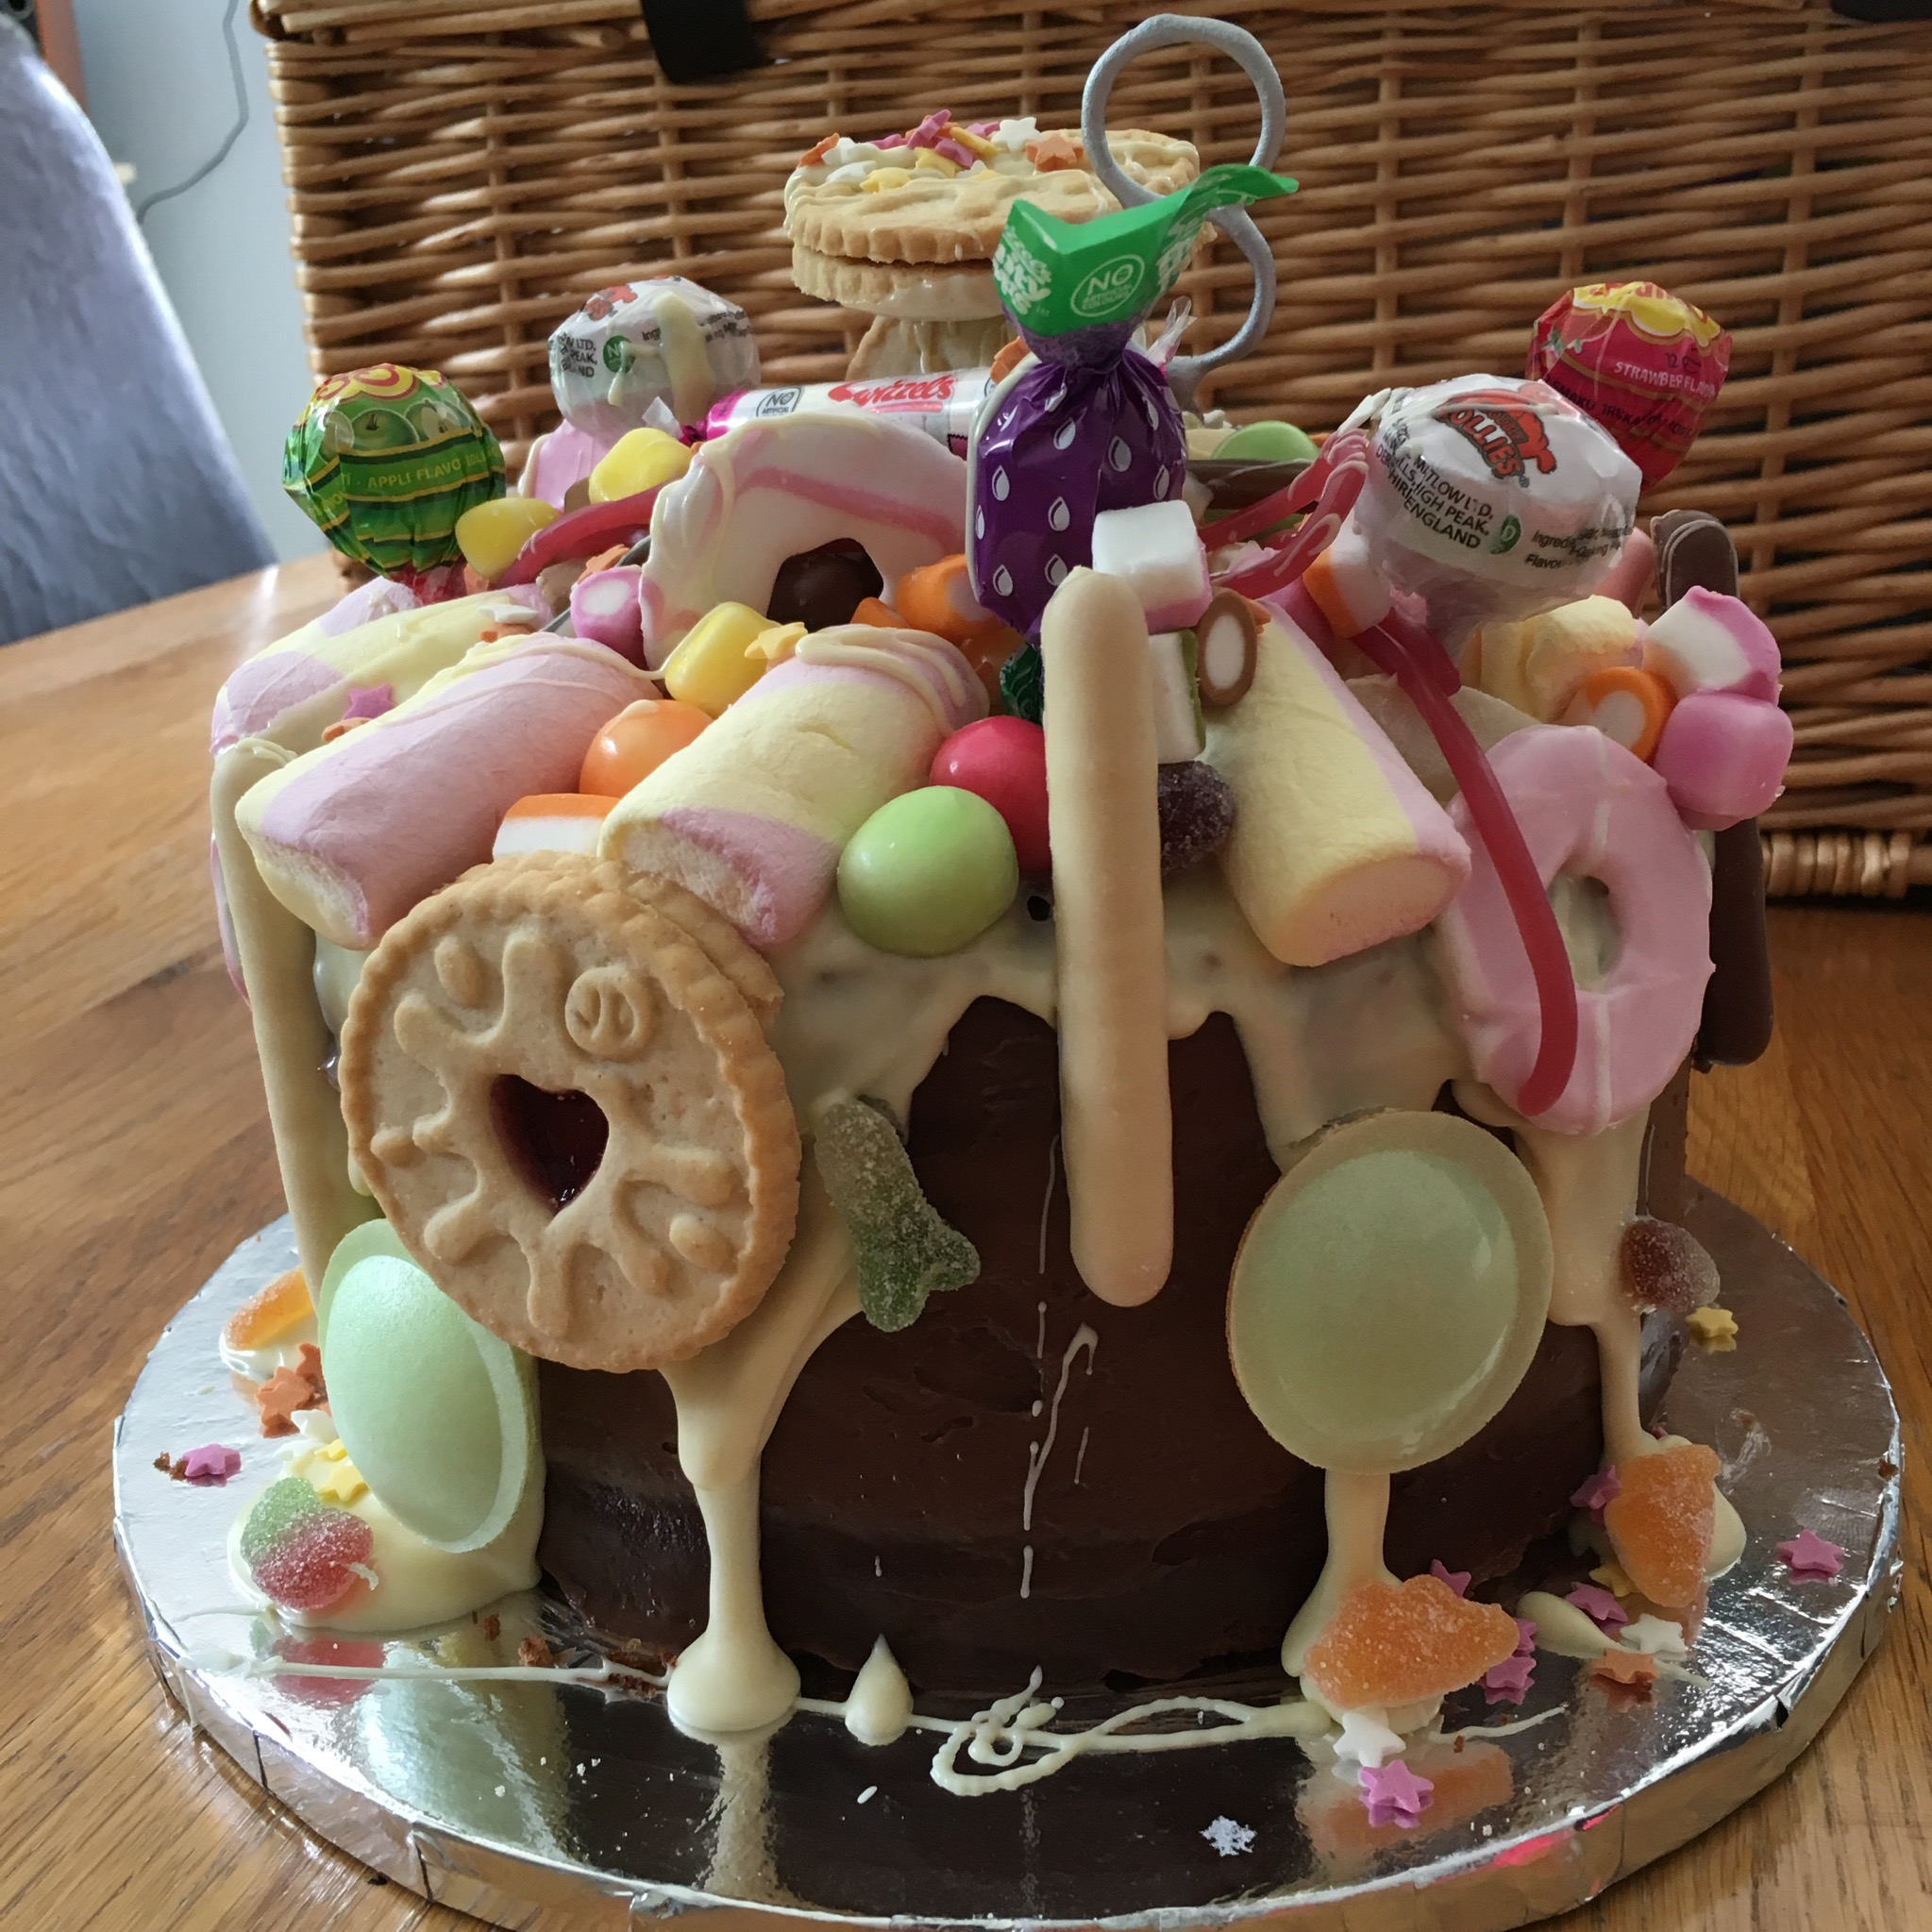 Willy Wonka's Sweetie Shop Topped Chocolate Cake